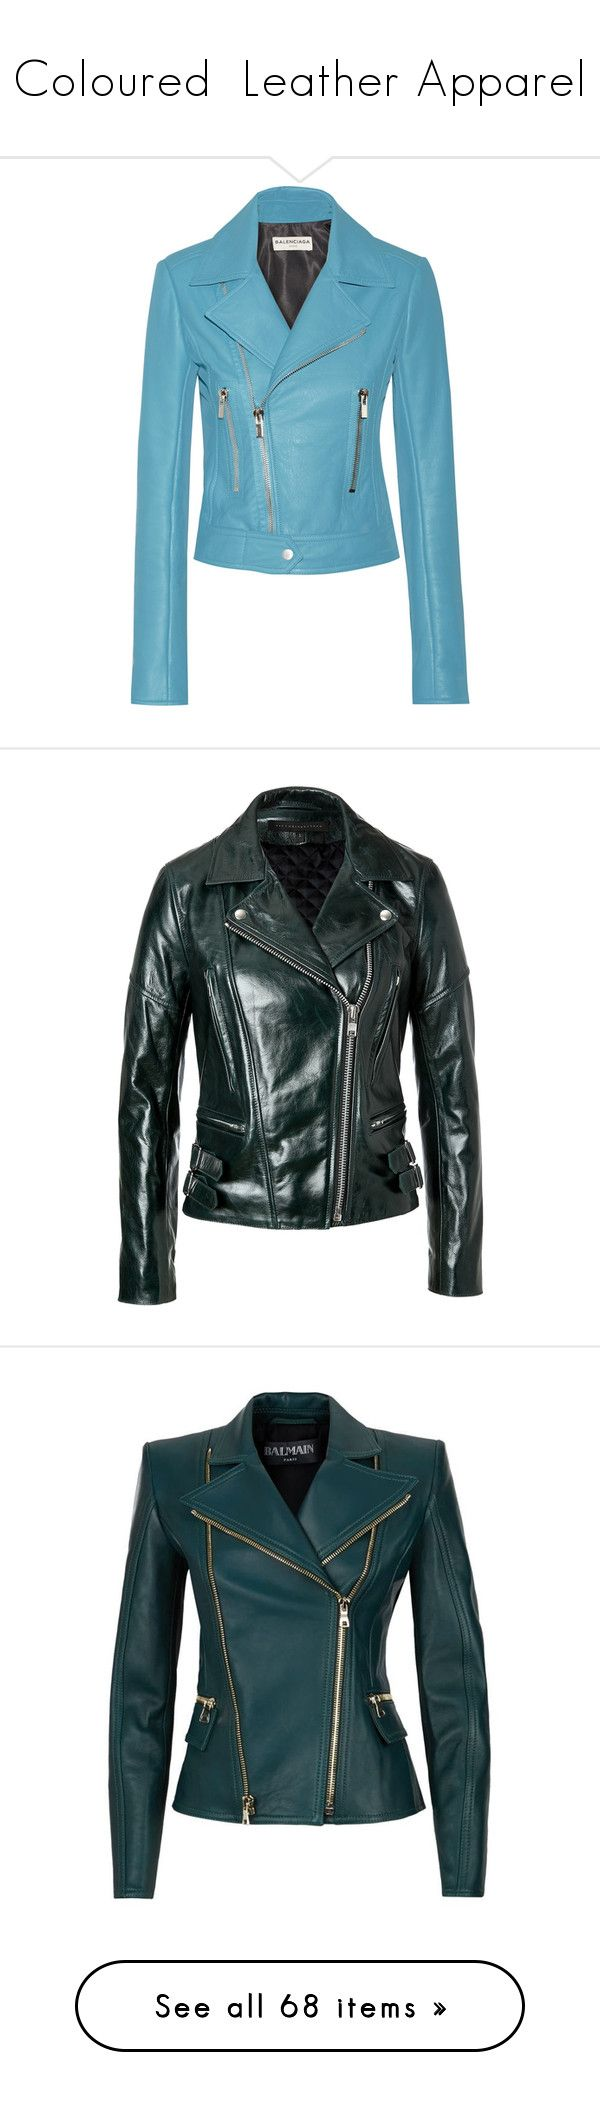 """""""Coloured  Leather Apparel"""" by jckyleeah ❤ liked on Polyvore featuring Leather, outerwear, jackets, balenciaga, leather jacket, blue jackets, cropped jacket, leather jackets, cropped leather jacket and real leather jackets"""